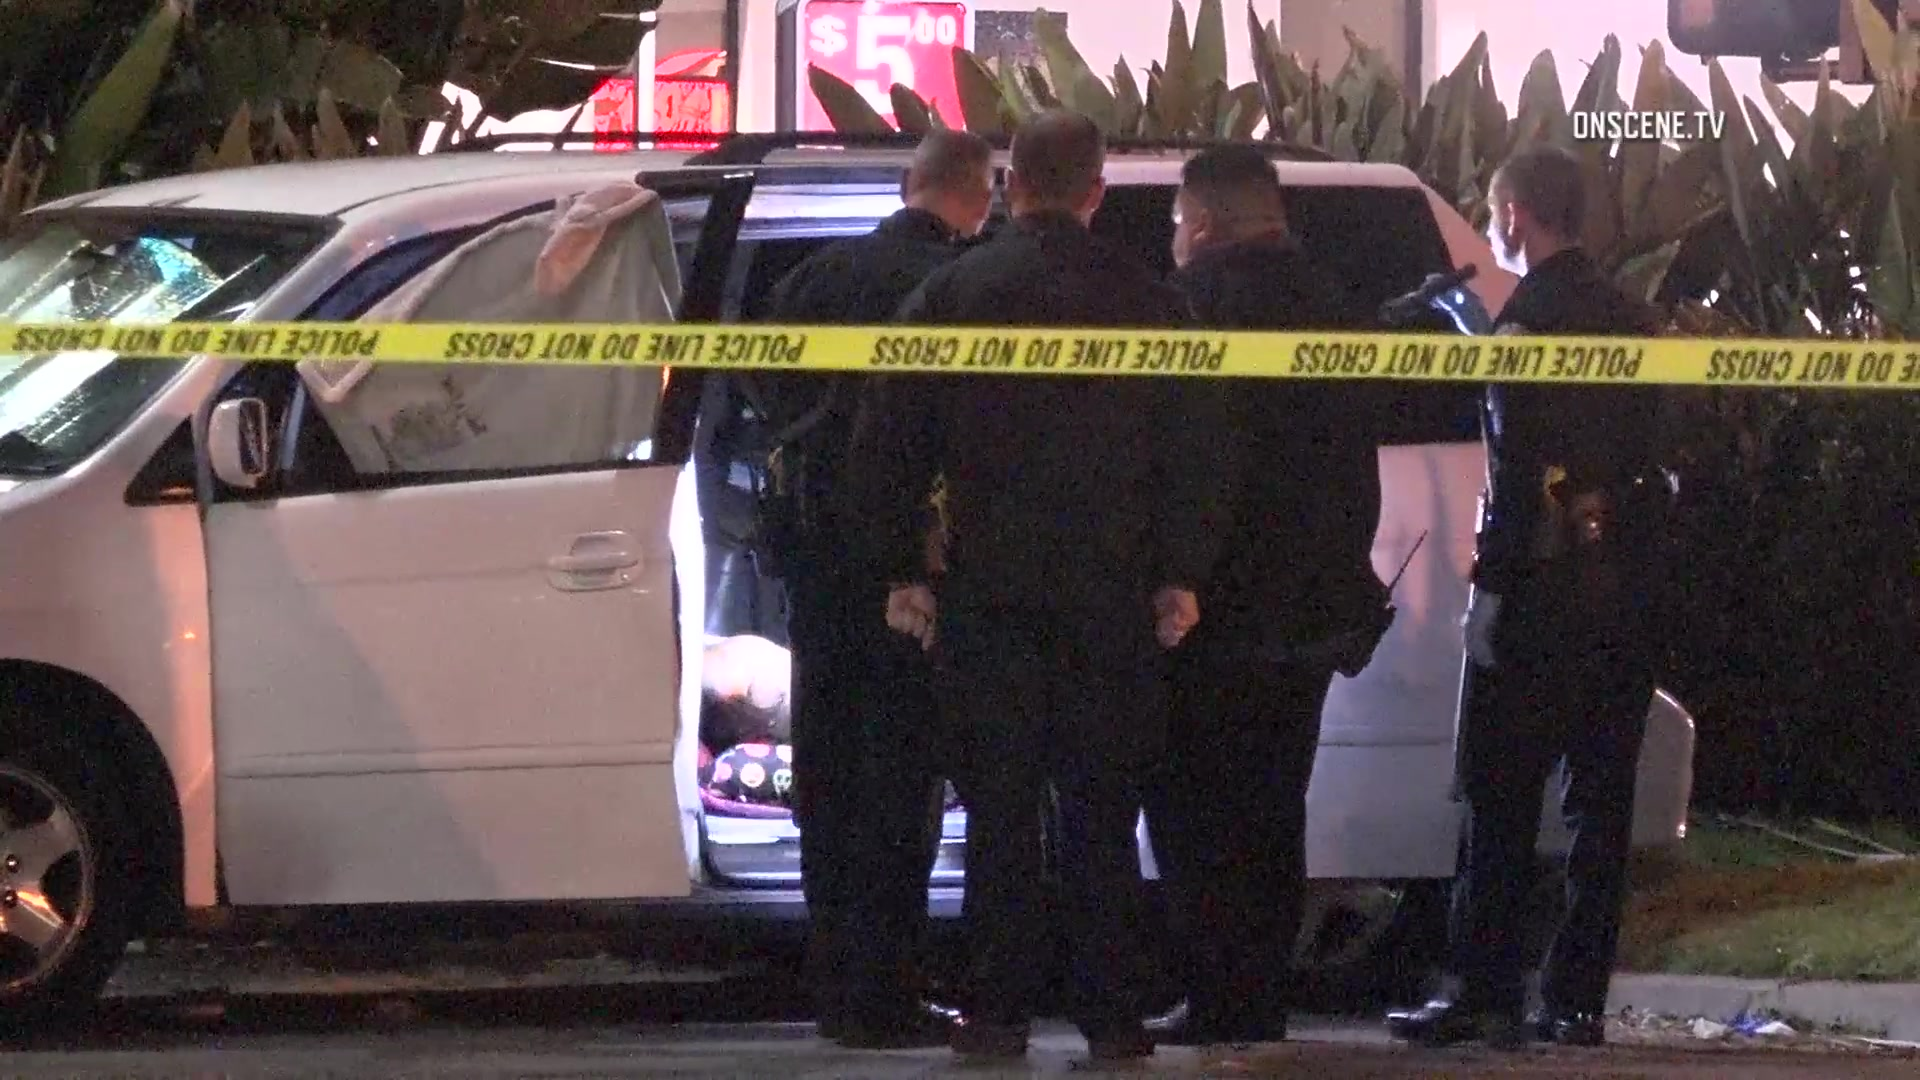 4 people found dead in parked van in Southern California